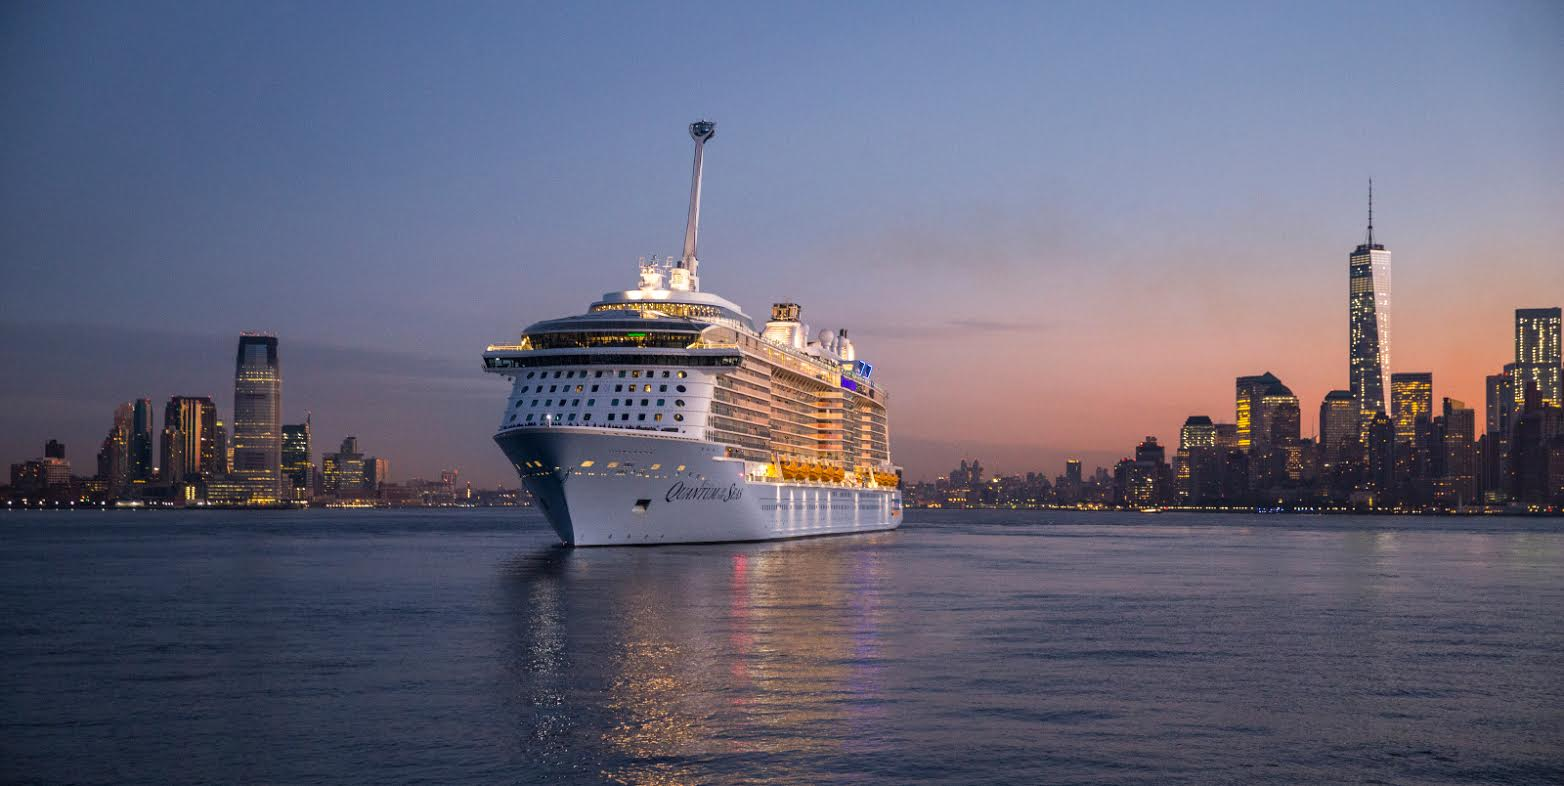 Quantum of the Seas - ensimmäinen saapuminen New Yorkiin 10.11.2014. Copyright Royal Caribbean International